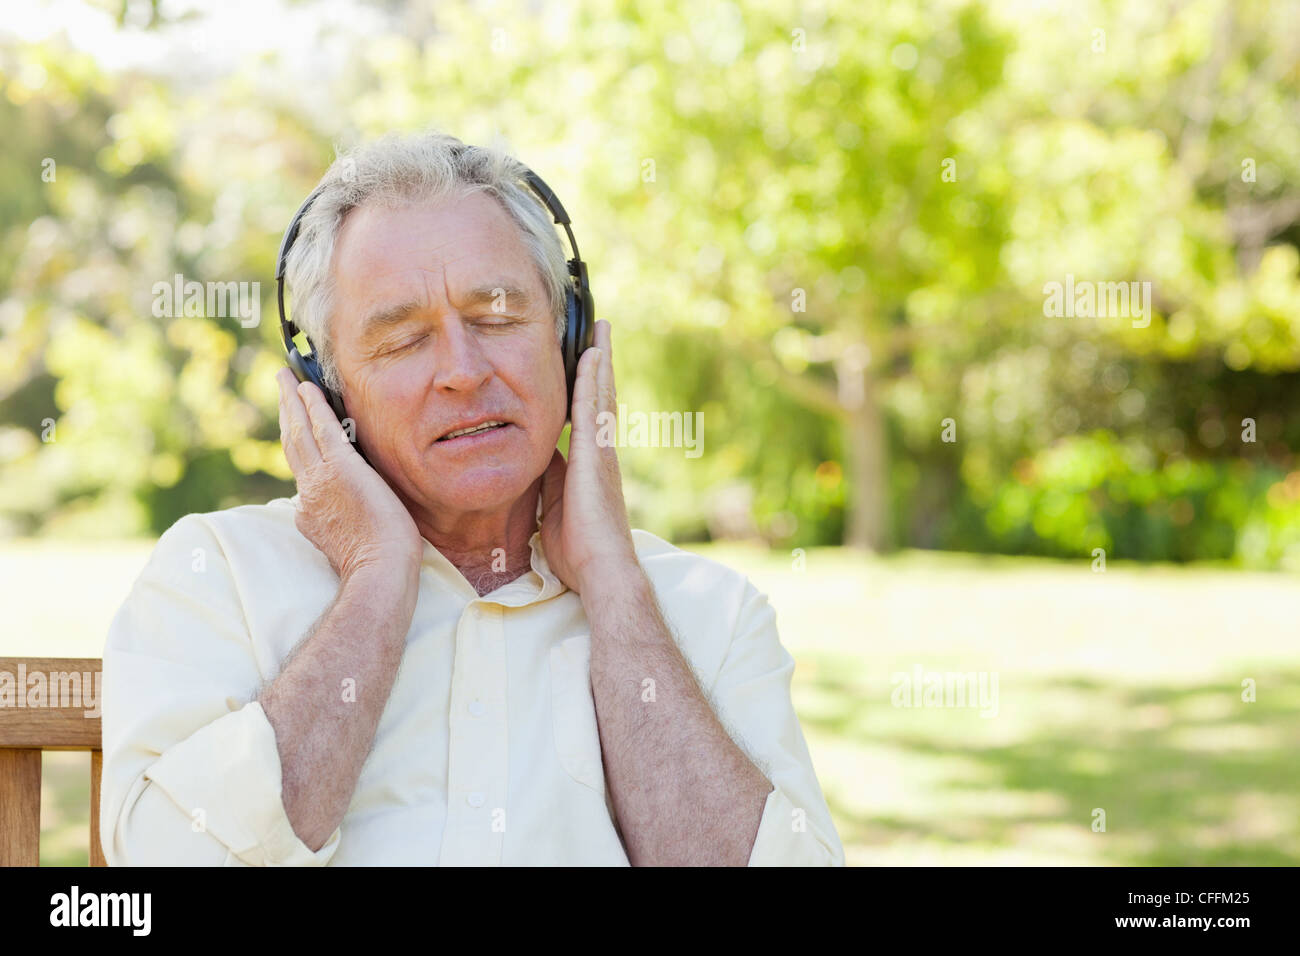 Man seriously listens to music - Stock Image